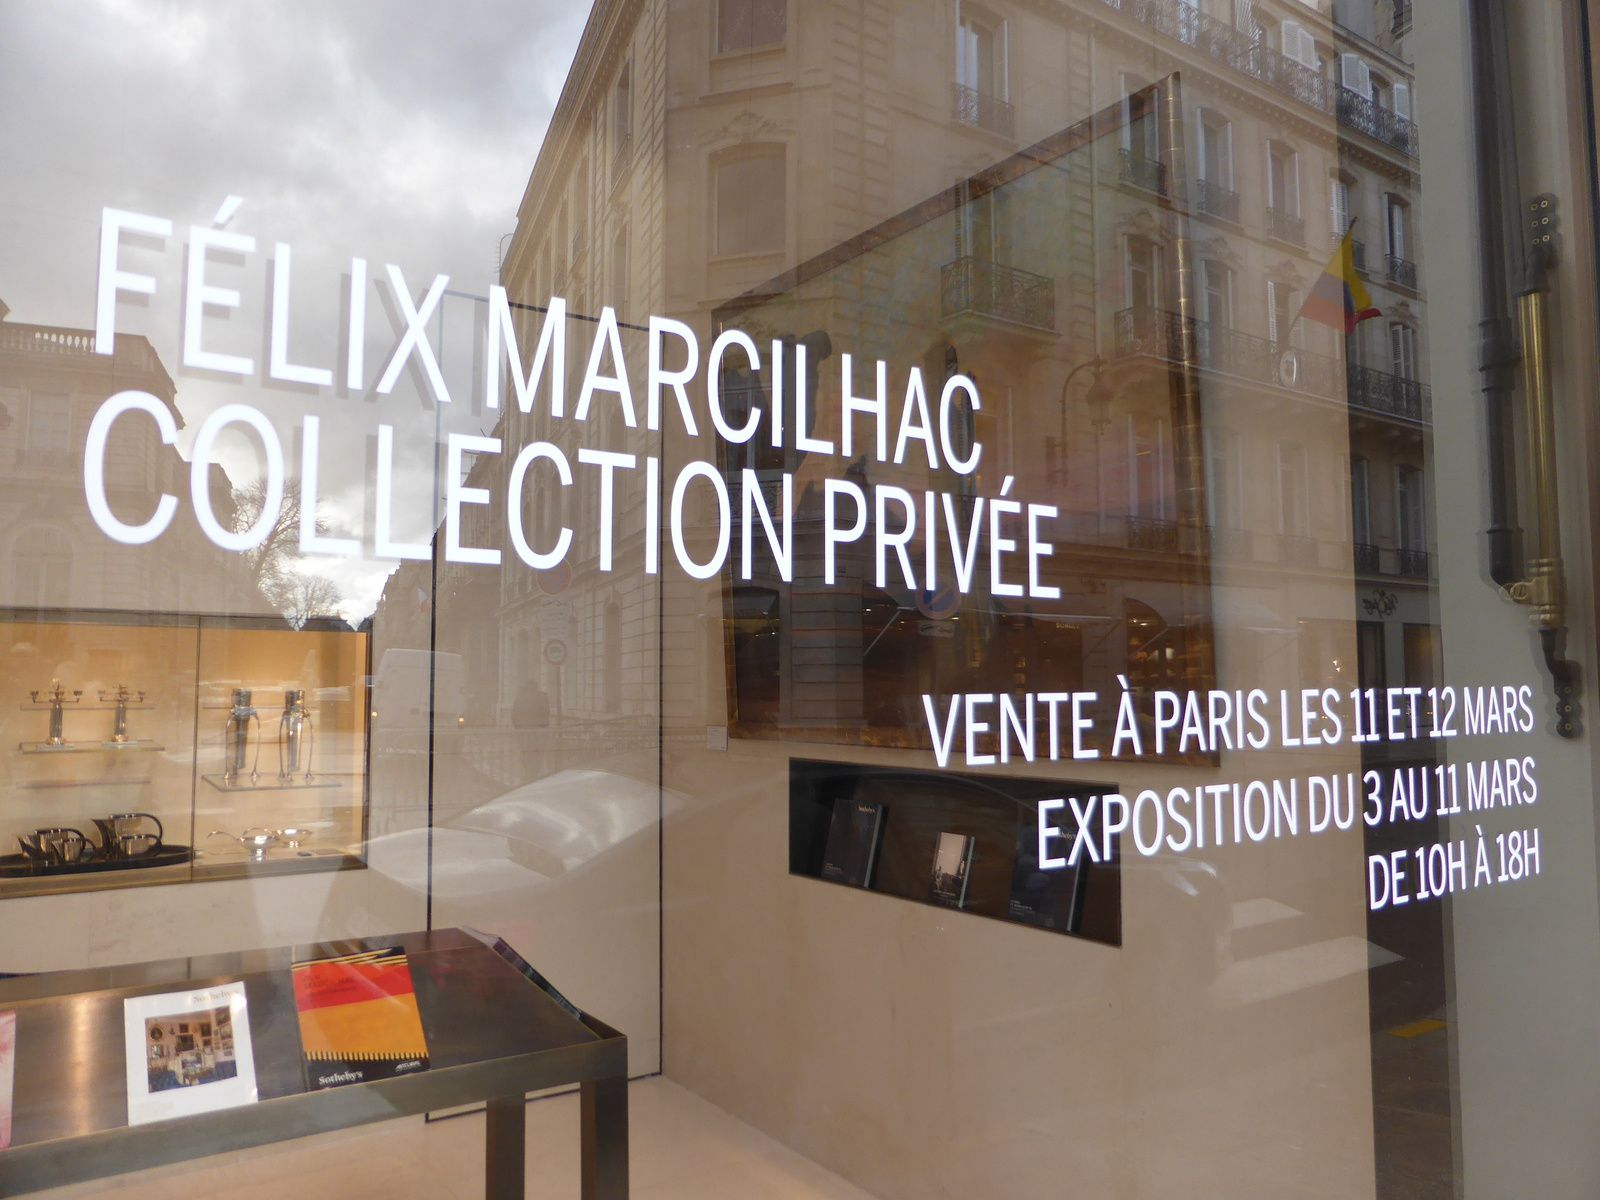 Vente Félix Marcilhac. Collection privée. Sotheby's Paris, mars 2014 © Photographie Gilles Kraemery's Paris